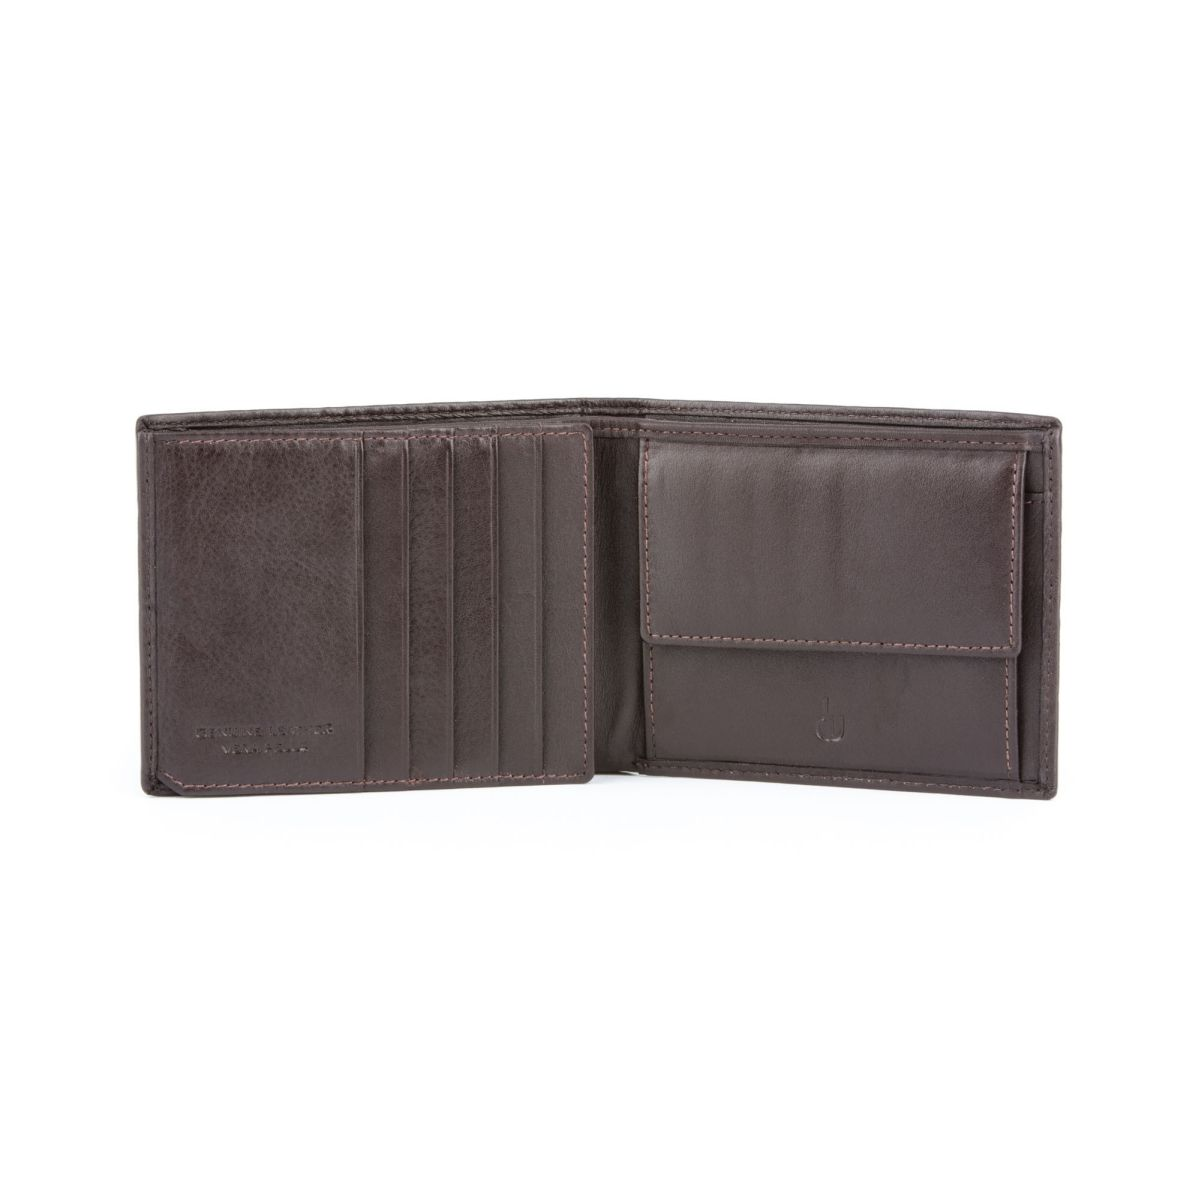 Leather Wallet for men with inner flap side - Brown